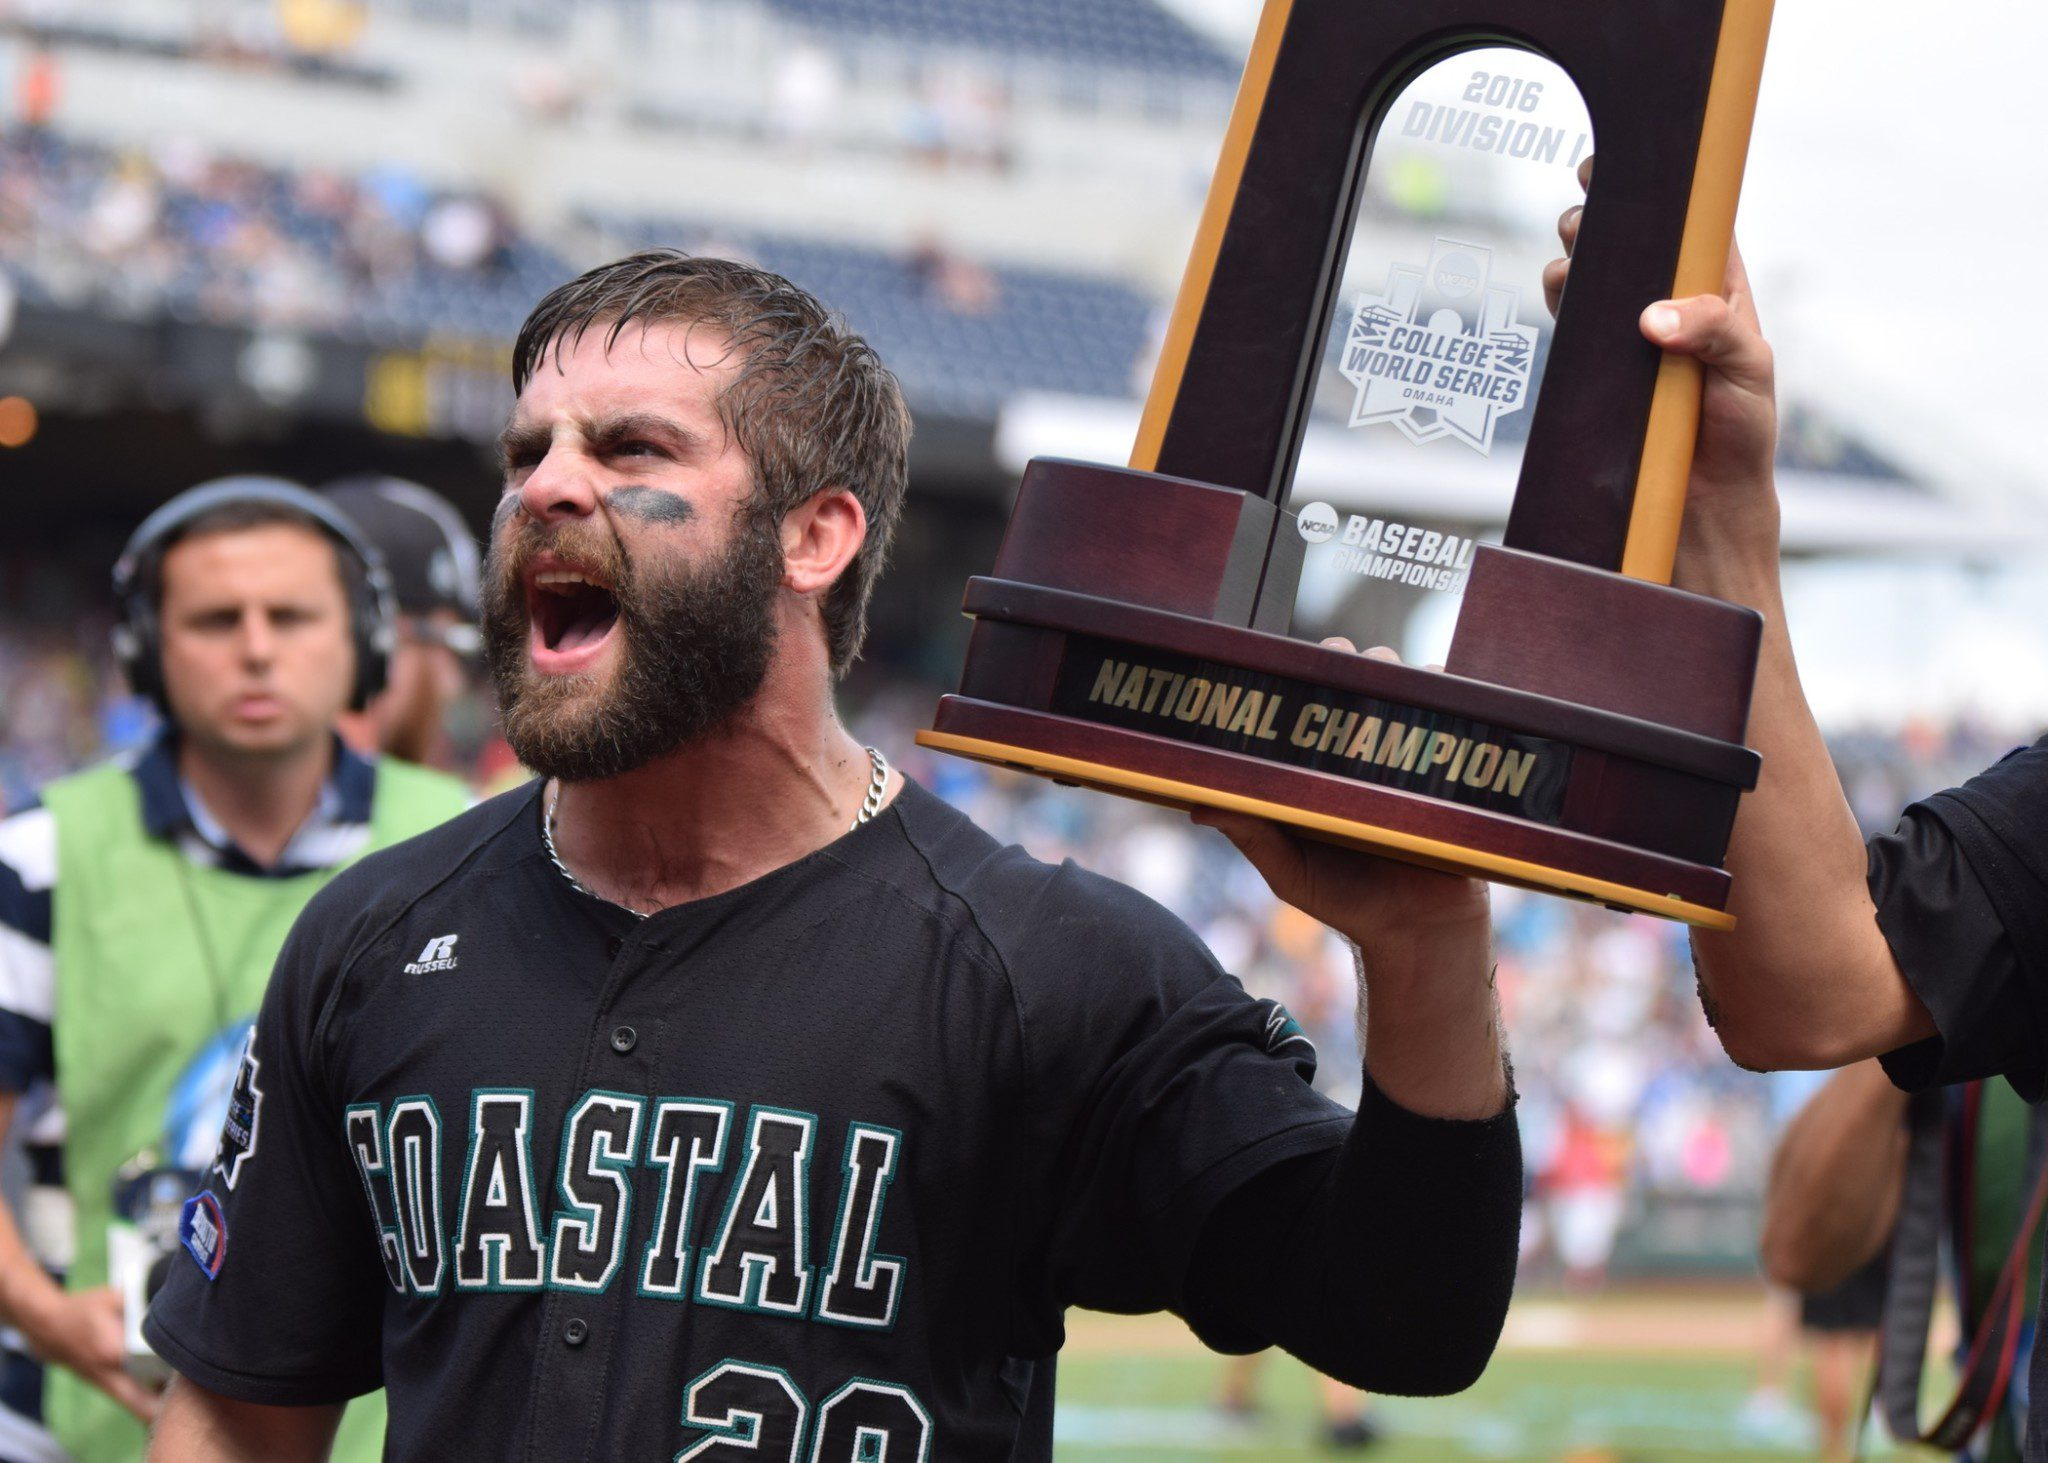 Coastal Carolina's Anthony Marks hoists the national championship trophy (Aaron Fitt)